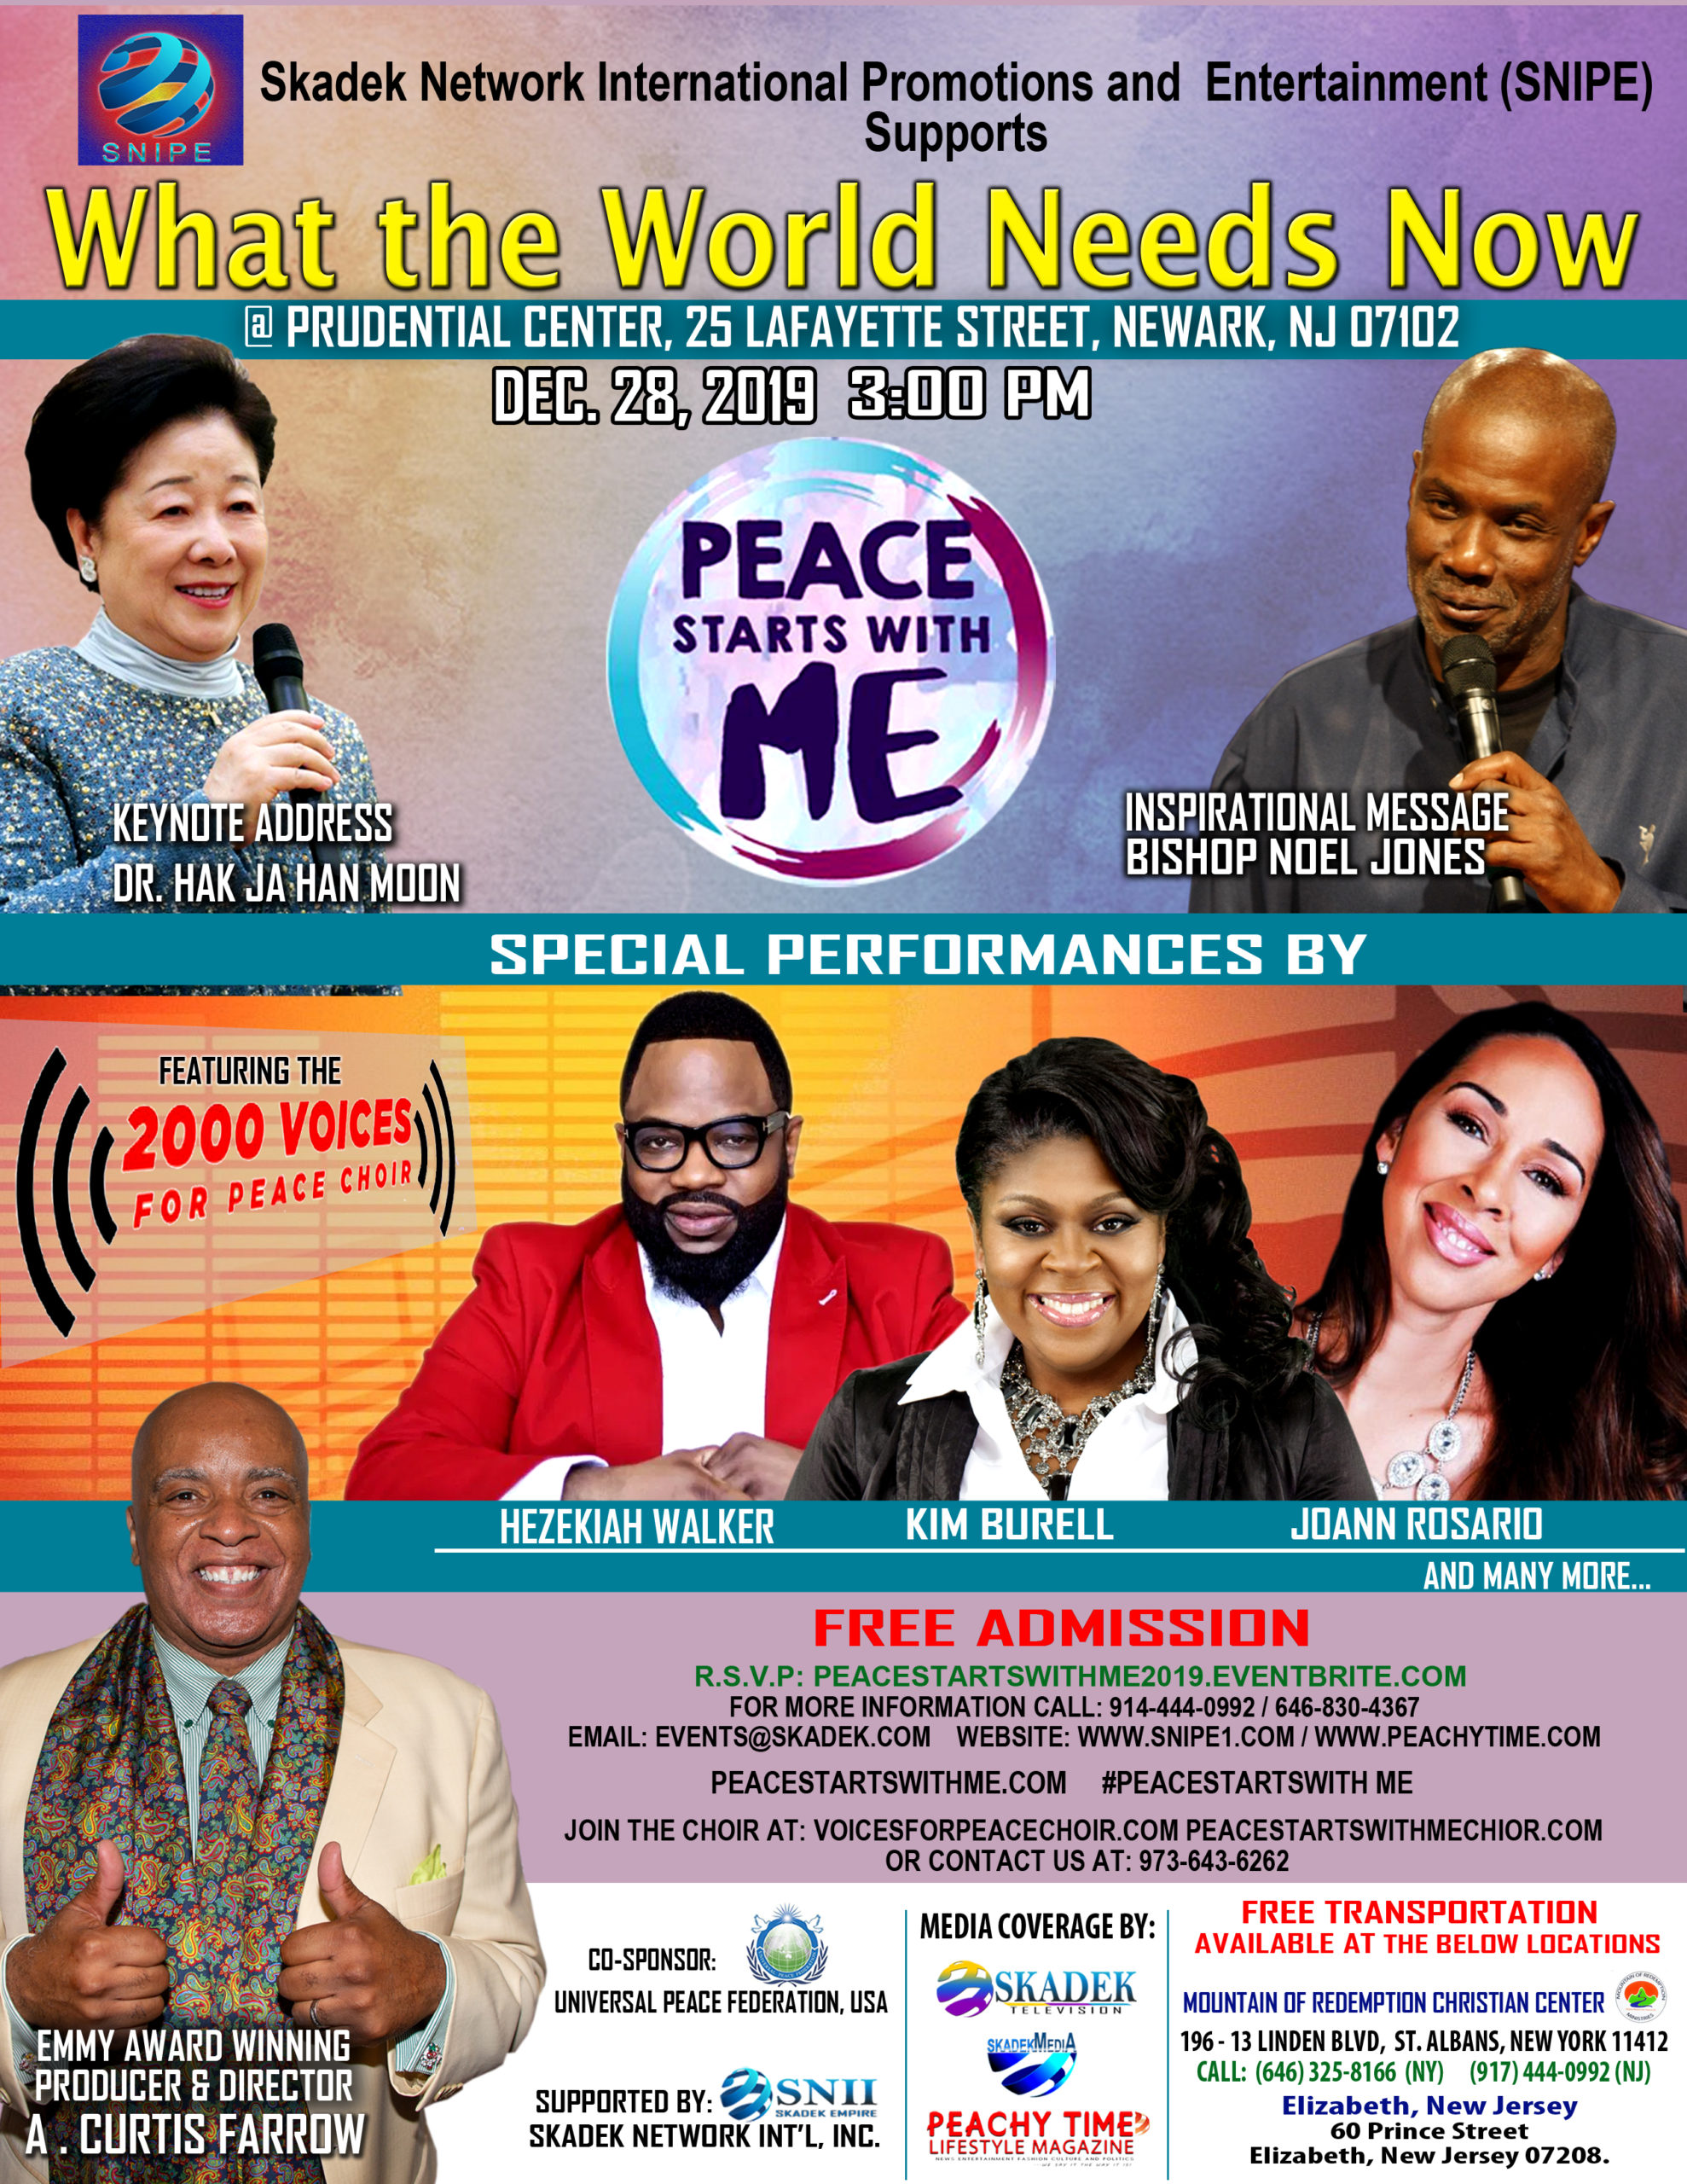 PEACE STARTS WITH ME CONCERT 2019 - UPDATED